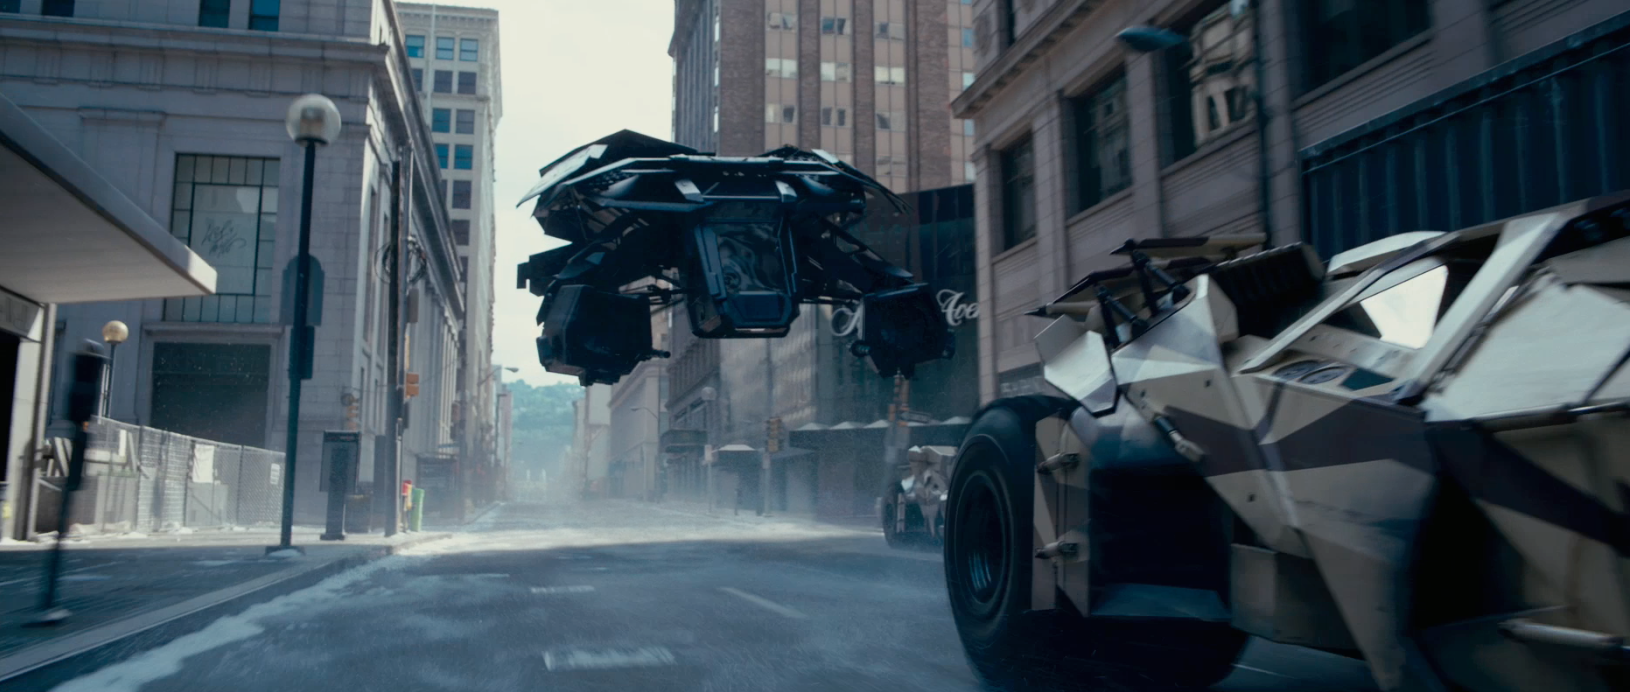 http://theshootening.files.wordpress.com/2012/01/tdkr-batwing.png